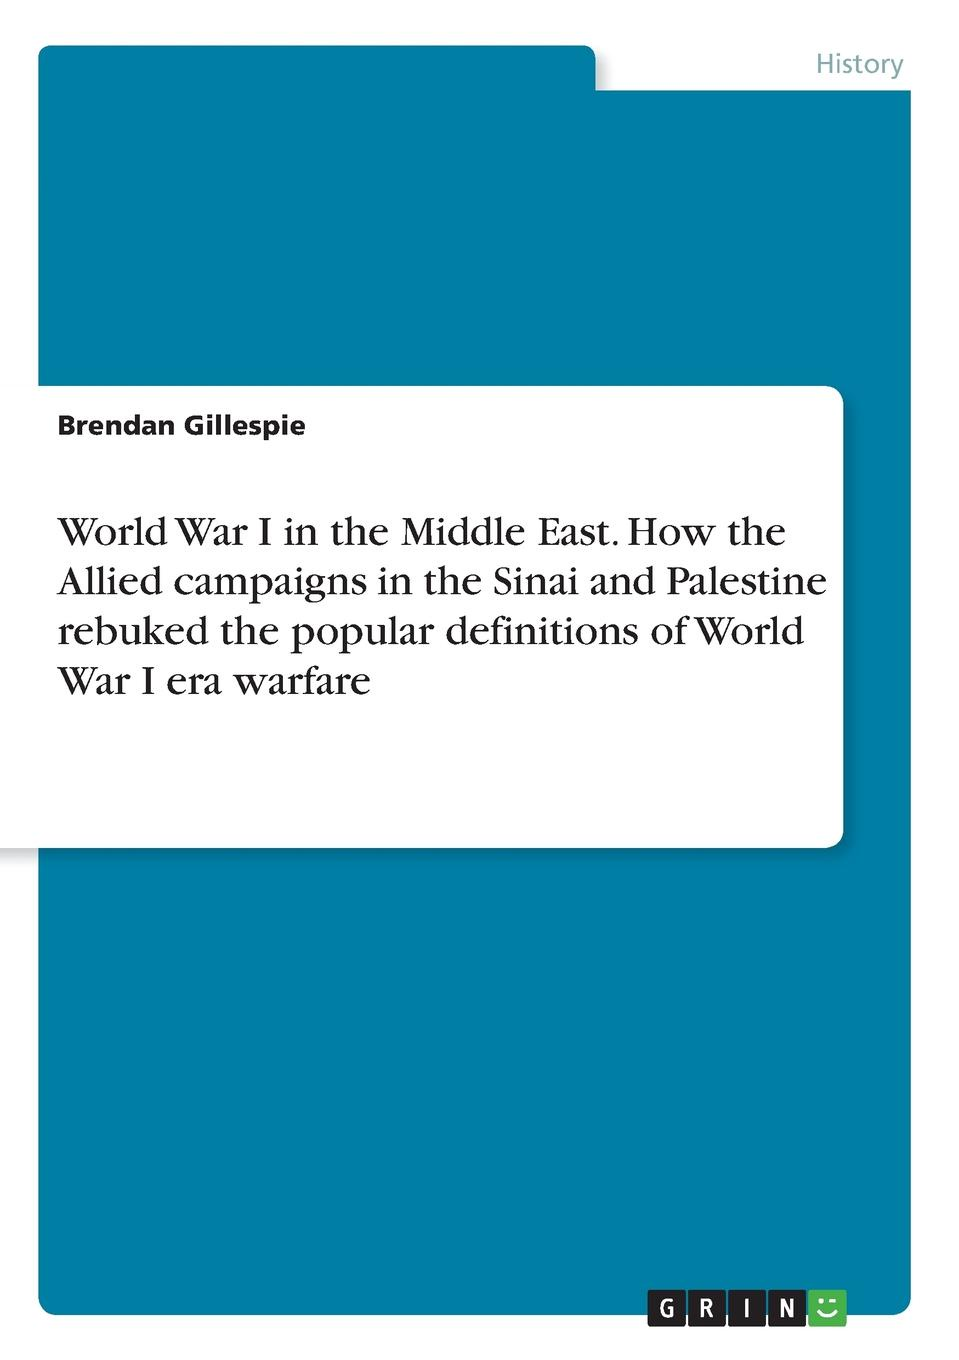 Brendan Gillespie World War I in the Middle East. How the Allied campaigns in the Sinai and Palestine rebuked the popular definitions of World War I era warfare early german aces of world war i